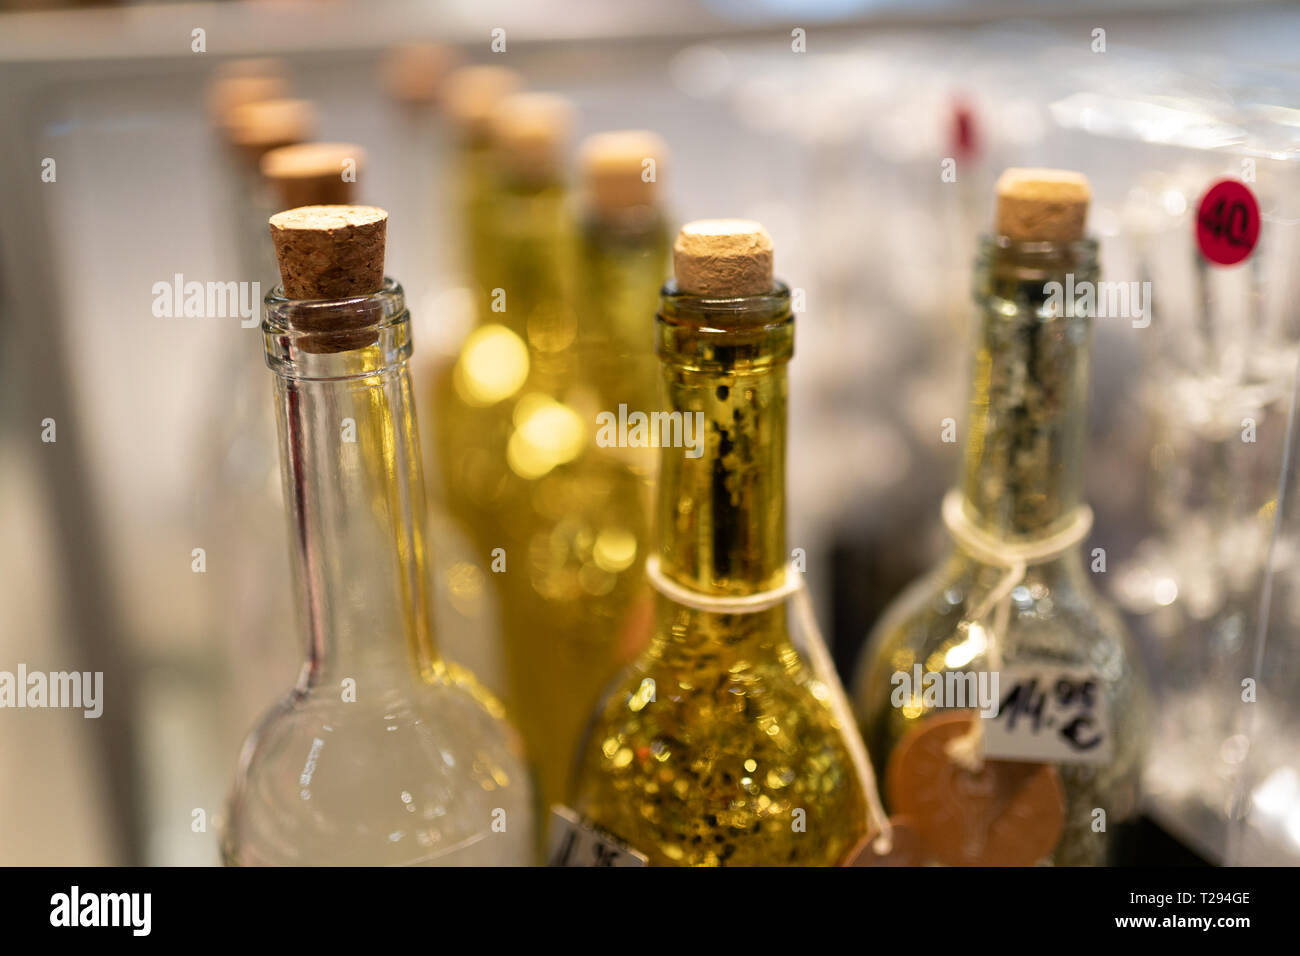 Yellow and white glass bottles in a shop - Stock Image